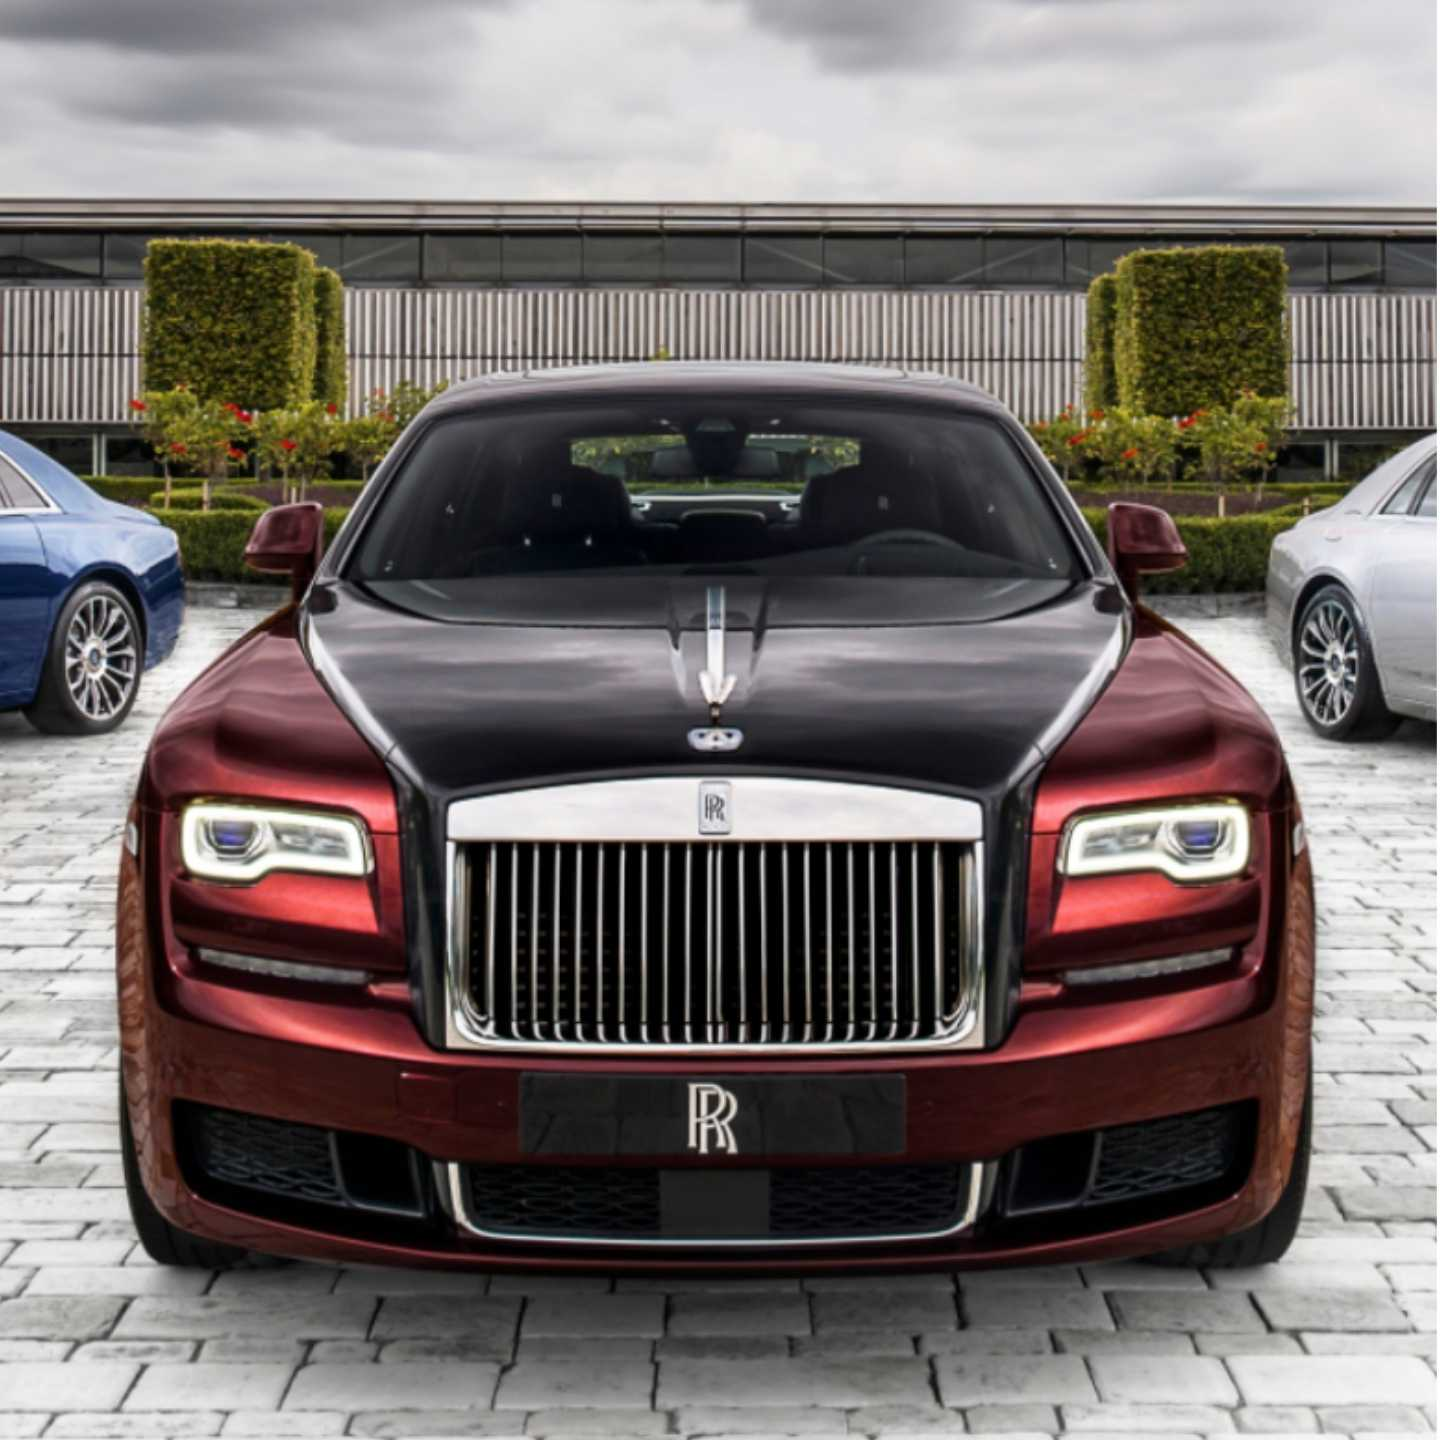 THE GHOST ZENITH, ROLLS-ROYCE, 360 MAGAZINE